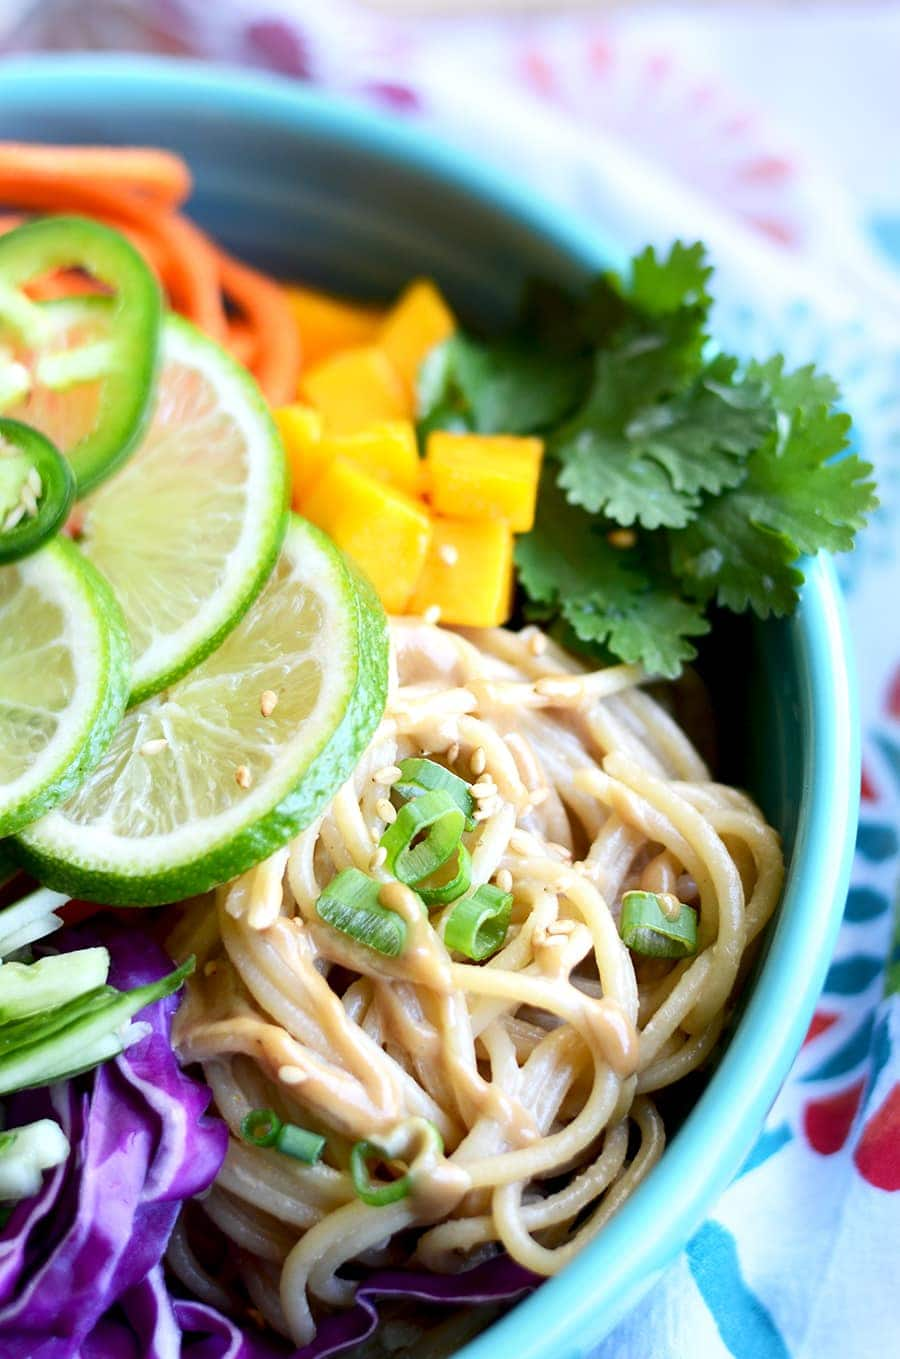 Noodles in Noodle Bowl Web - Sesame Noodle Salad with Cashew Dressing